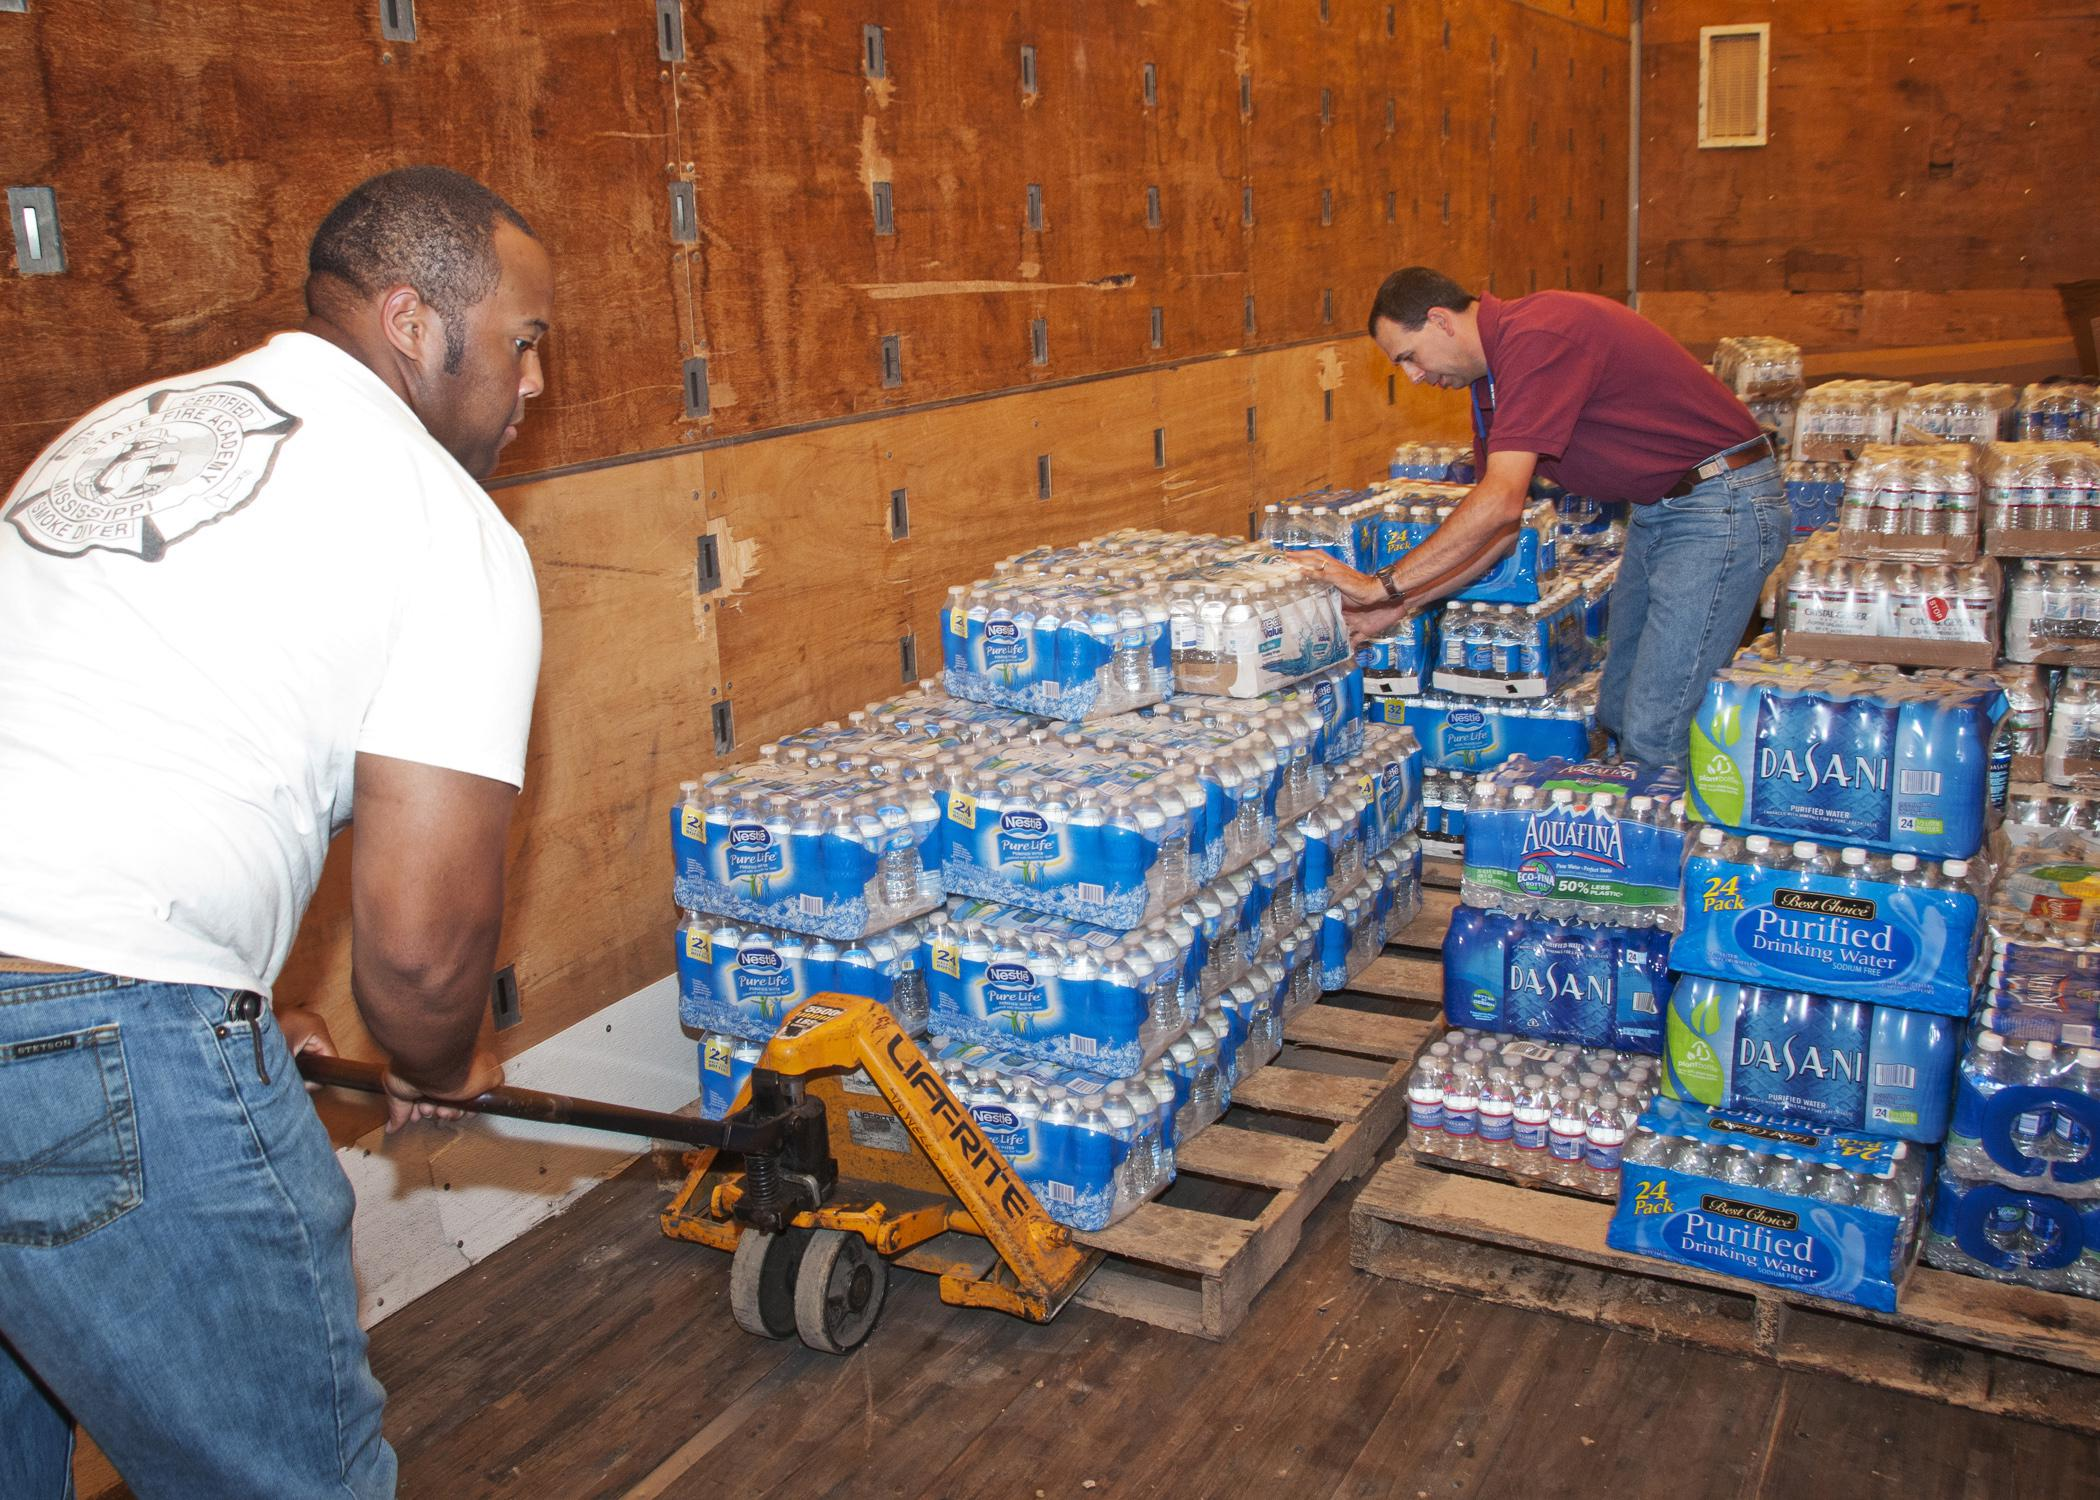 B.J. McClenton, Monroe County Extension coordinator (left), and Charlie Stokes, area Extension agent, unload water from a semi-trailer to distribute to tornado victims in Monroe County in 2011. (Photo by MSU Ag Communications/Scott Corey)